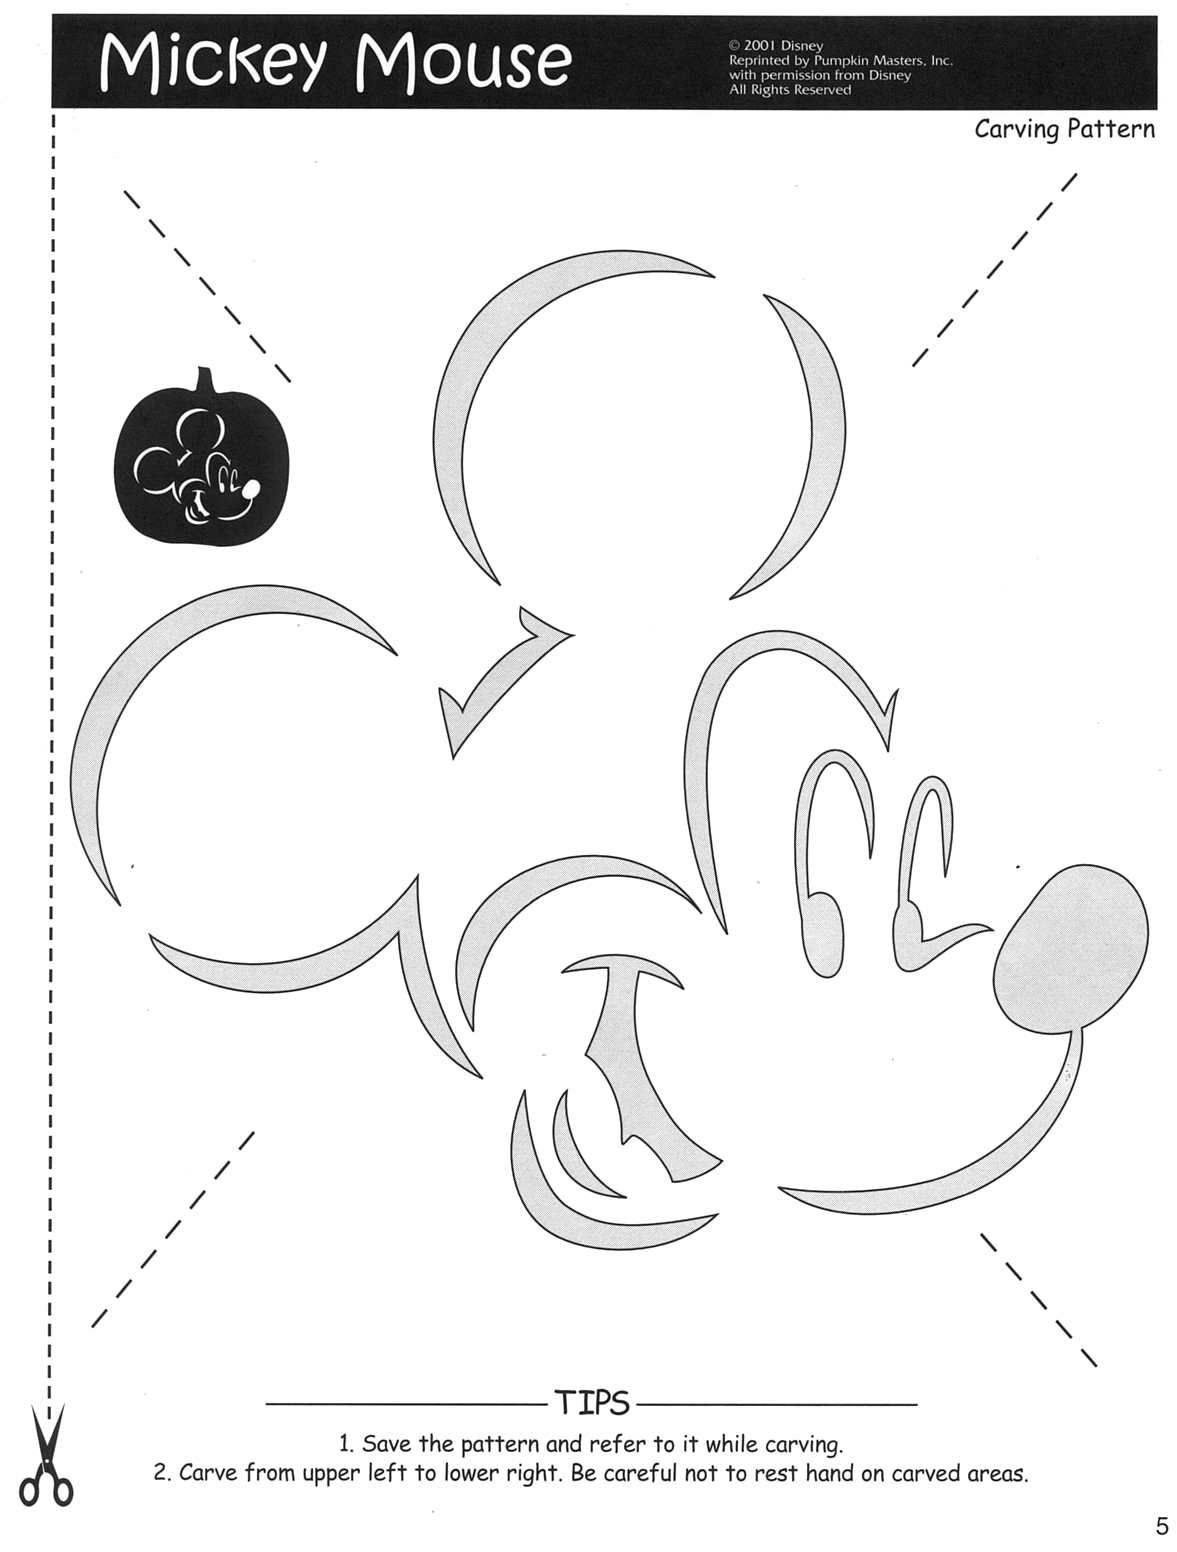 picture regarding Mickey Mouse Stencil Printable referred to as 8 Excellent Pics of Mickey Mouse Stencil Printable - Mickey